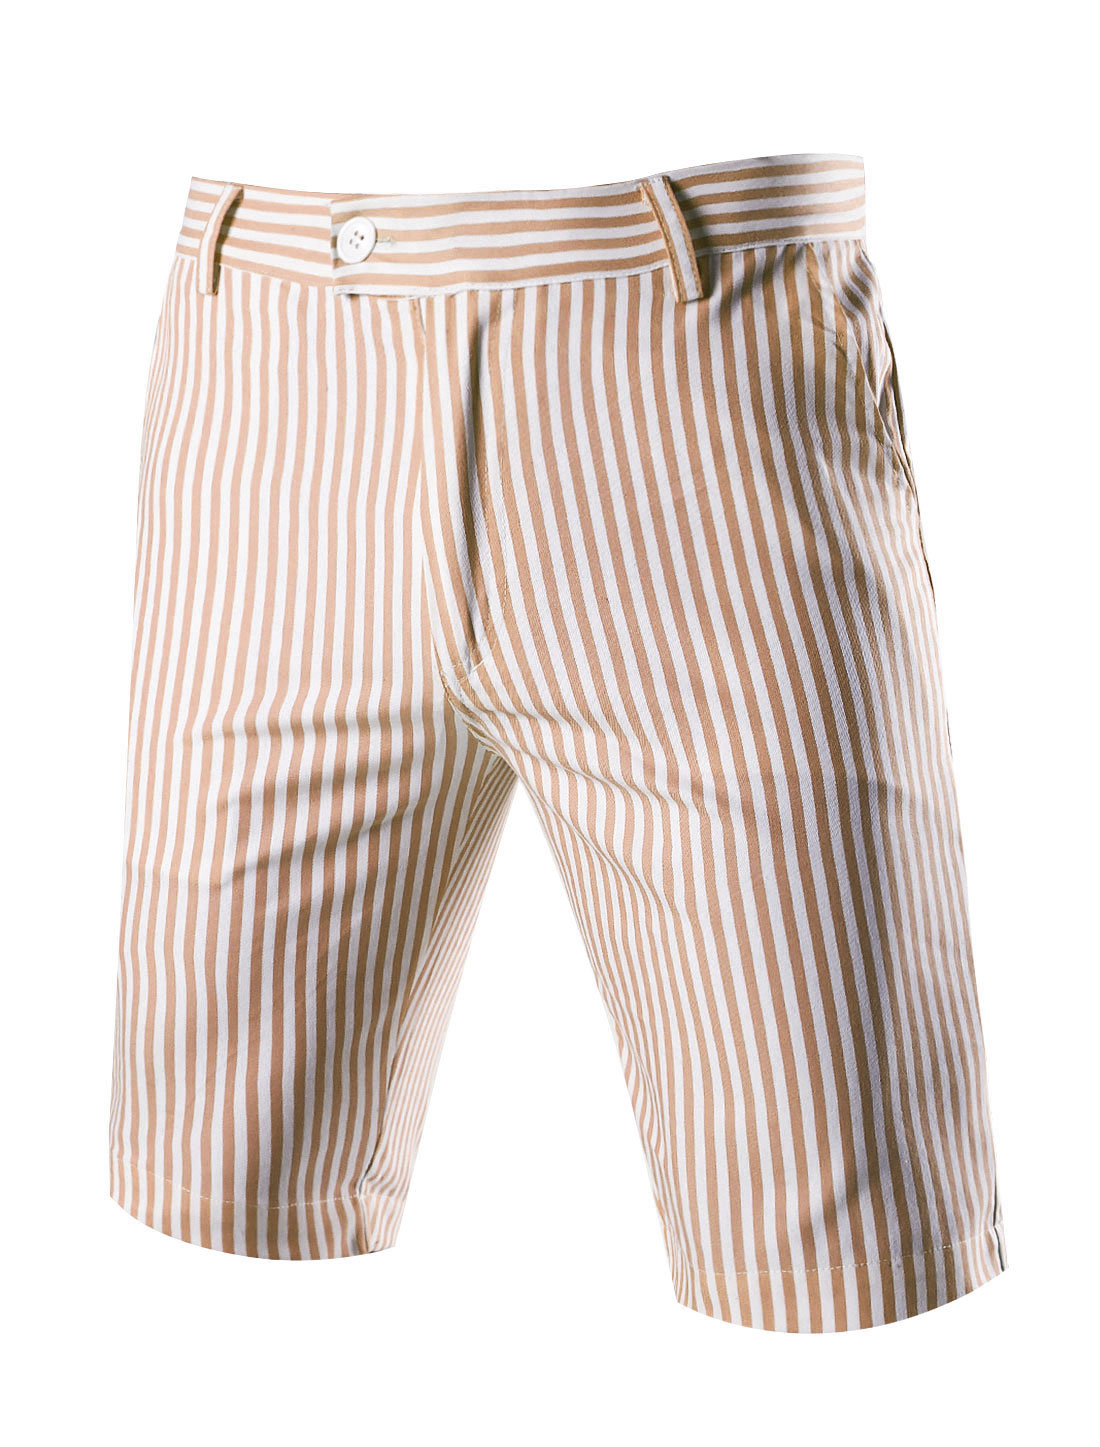 Men Vertical Stripes Four Pockets Casual Chino Shorts Beige W36